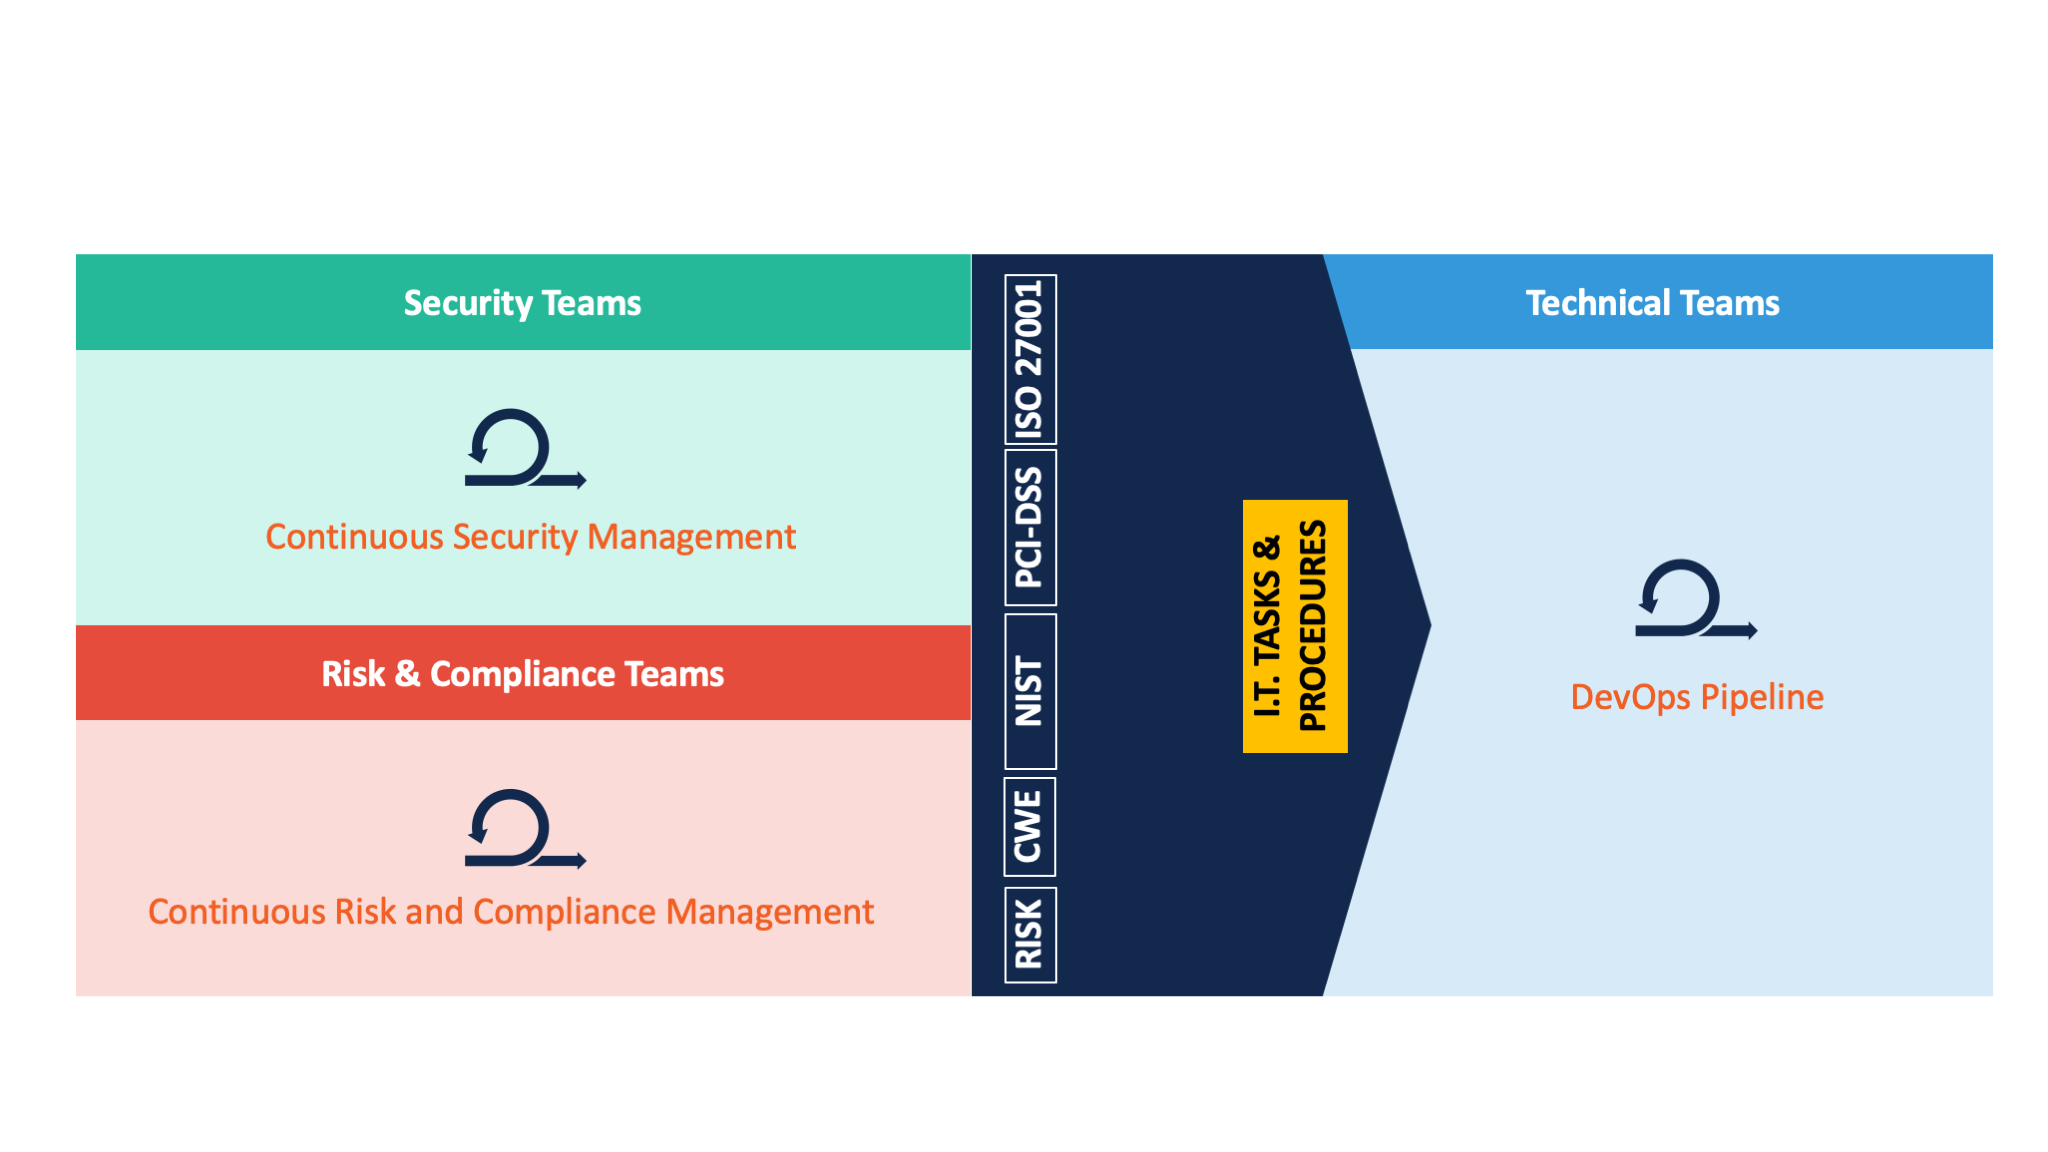 Process disconnect between security, risk and compliance and technical teams